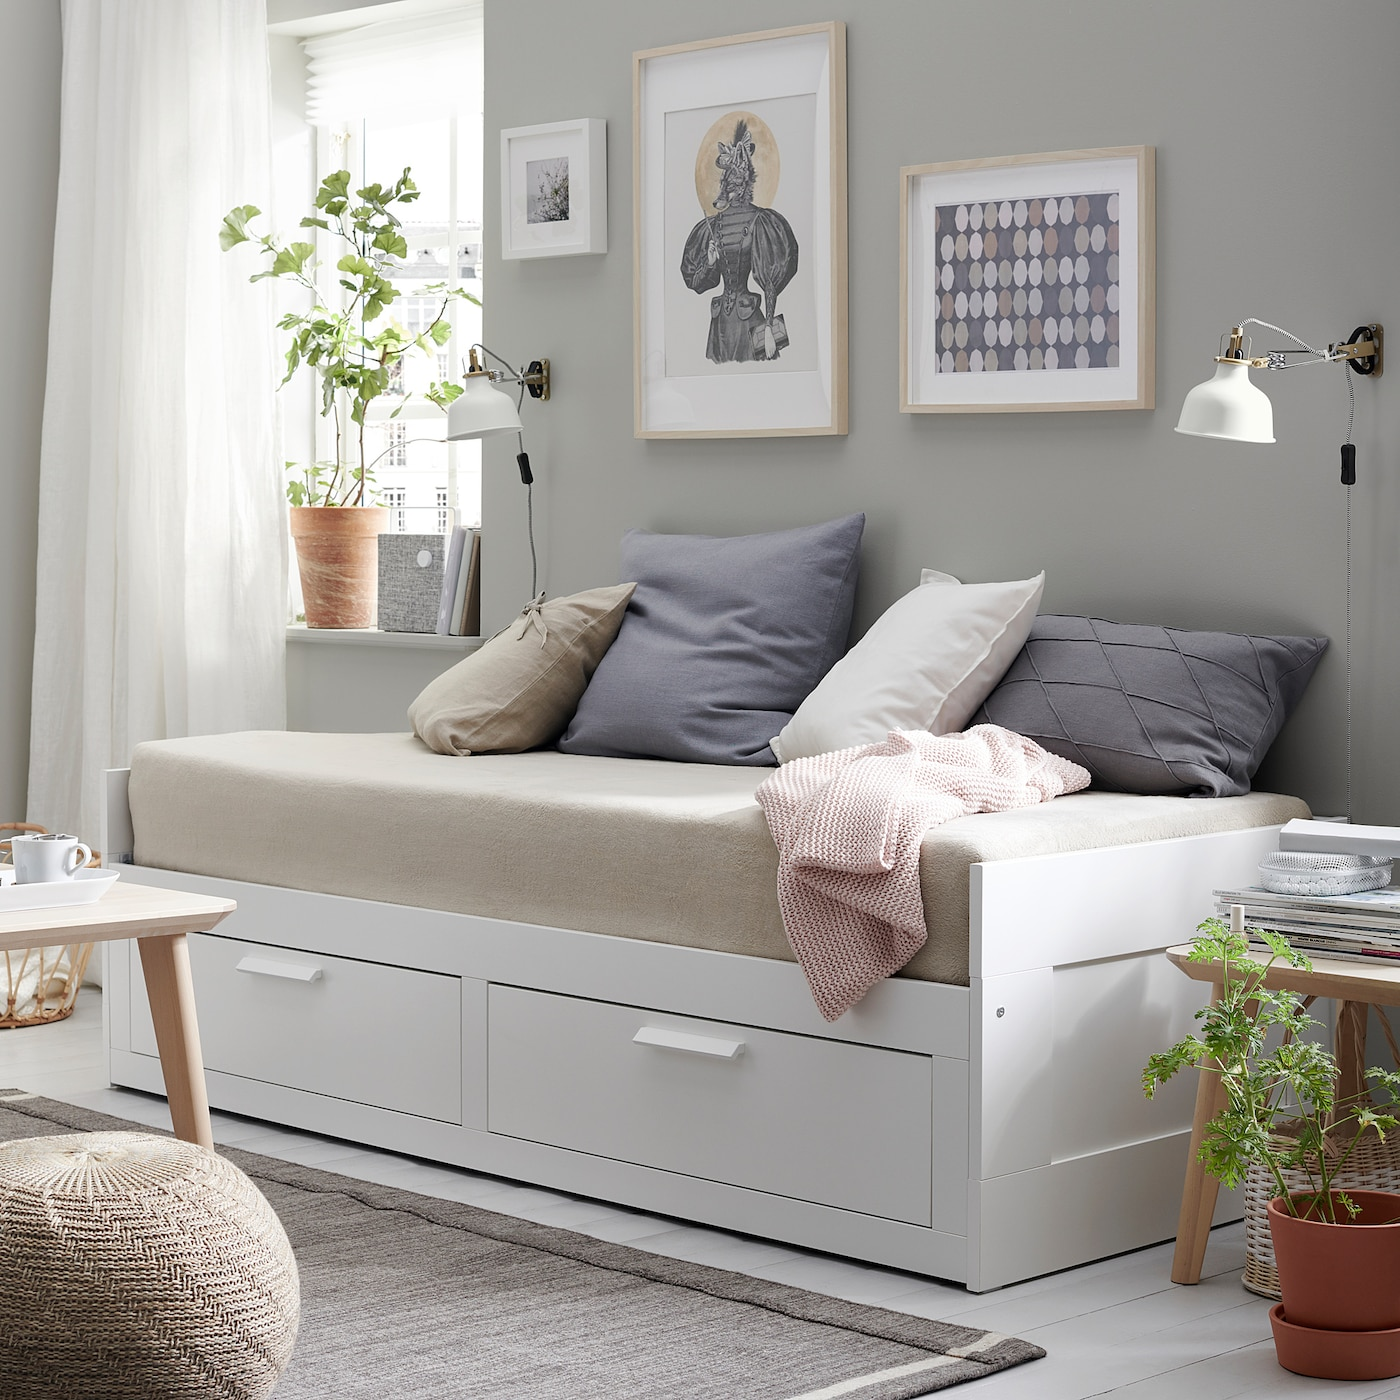 - BRIMNES Daybed Frame With 2 Drawers, White, Twin - IKEA